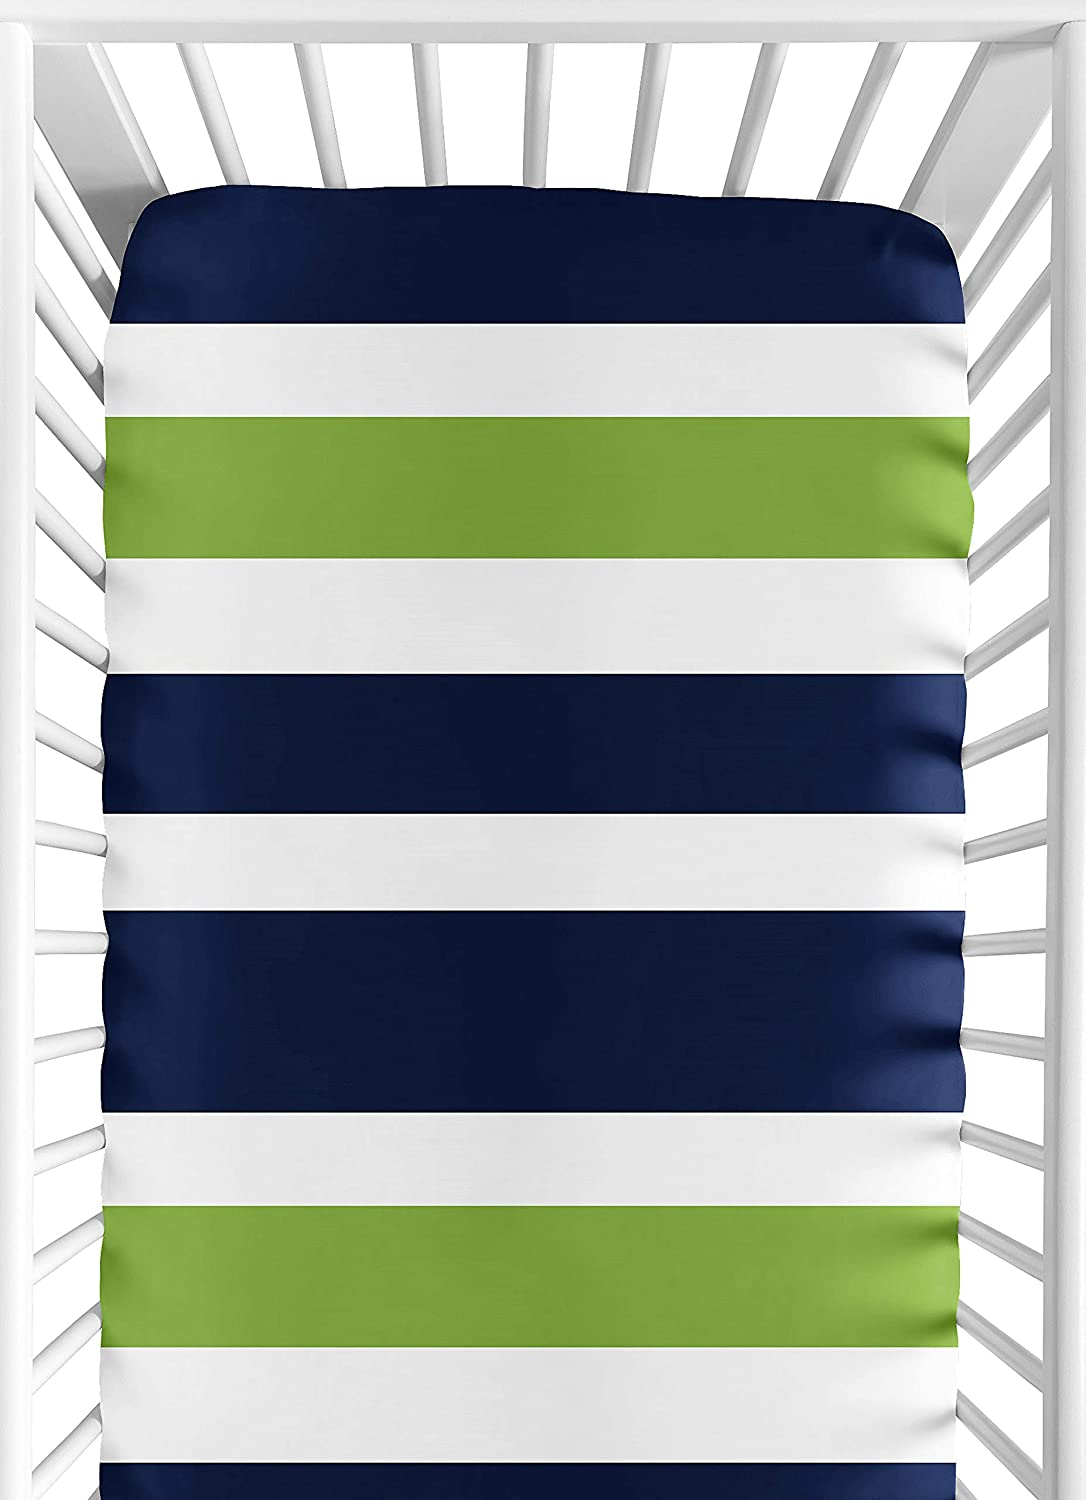 Sweet Jojo Designs Fitted Crib Sheet for Navy Blue and Lime Green Baby/Toddler Bedding Set Collection - Stripe Print